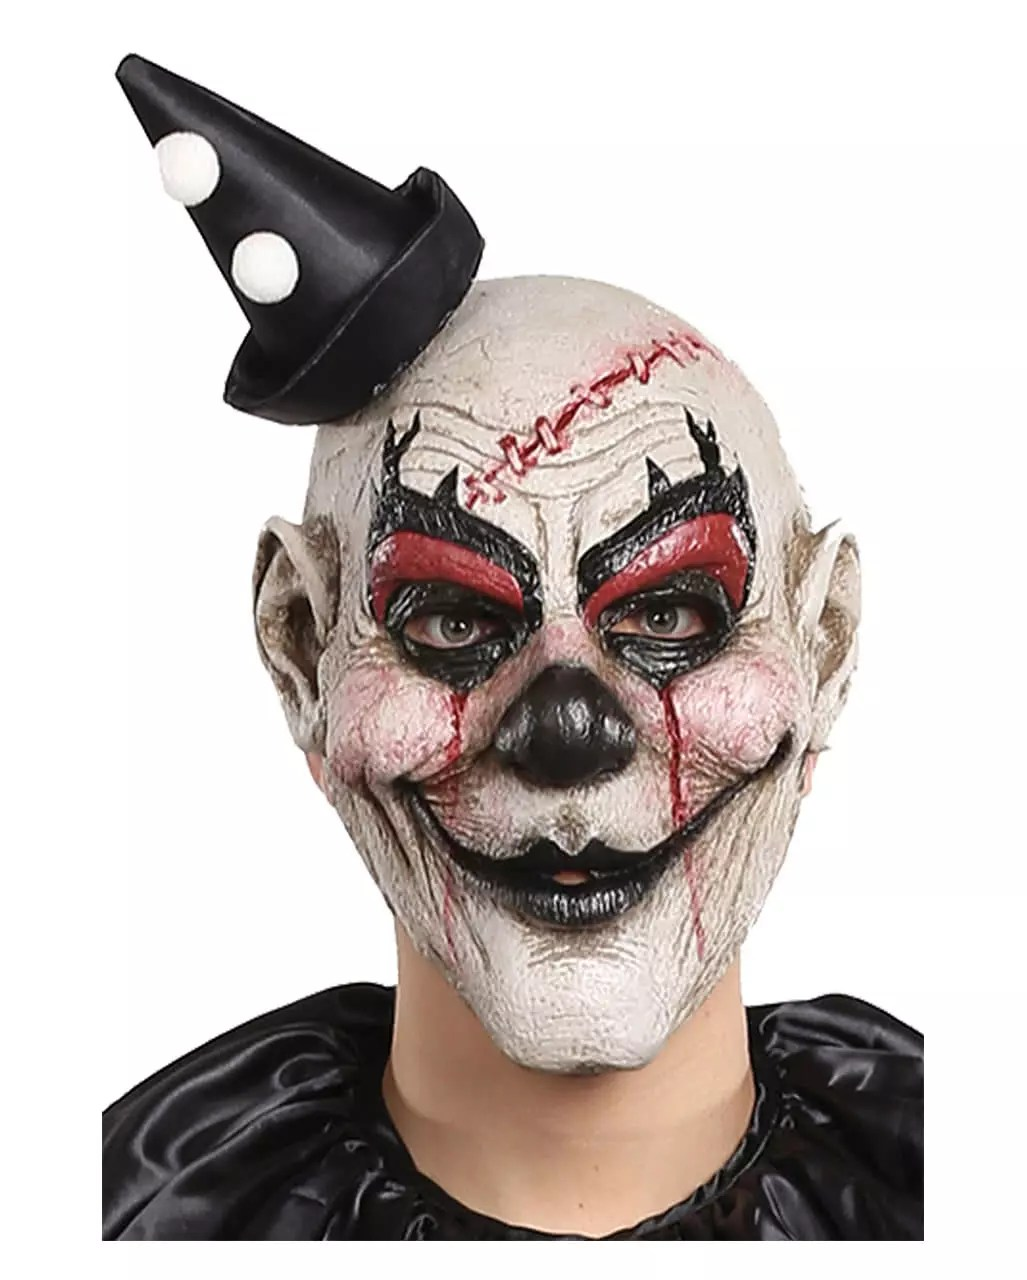 Wanddeko Clown Killjoy Clown Halloween Mask